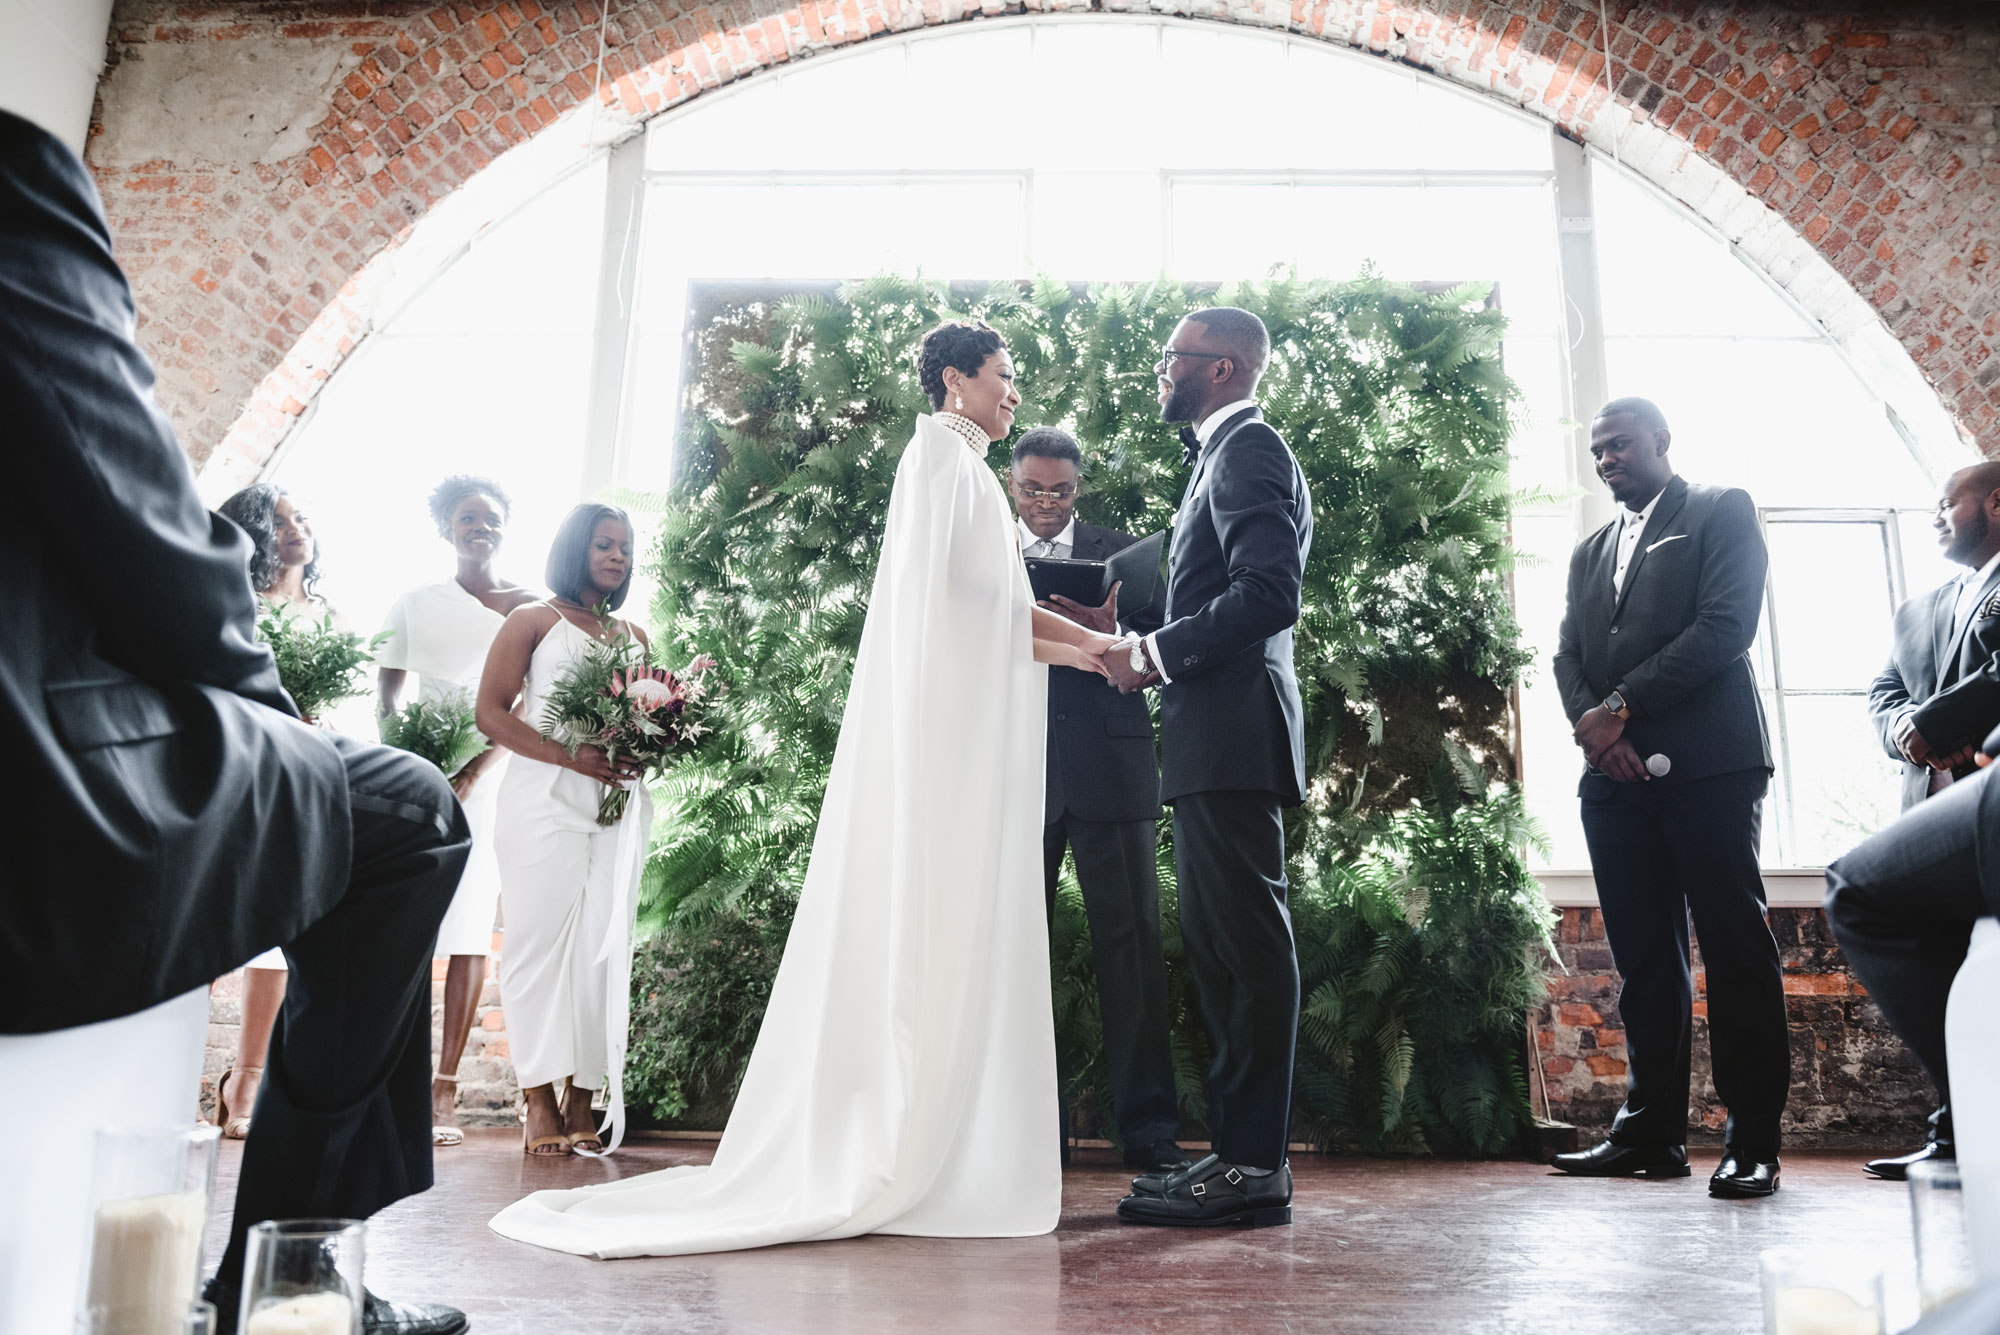 This bride was inspired by Solange's wedding aesthetic and recreated it for her own day. (Credit: Aaron Ricketts Photography)